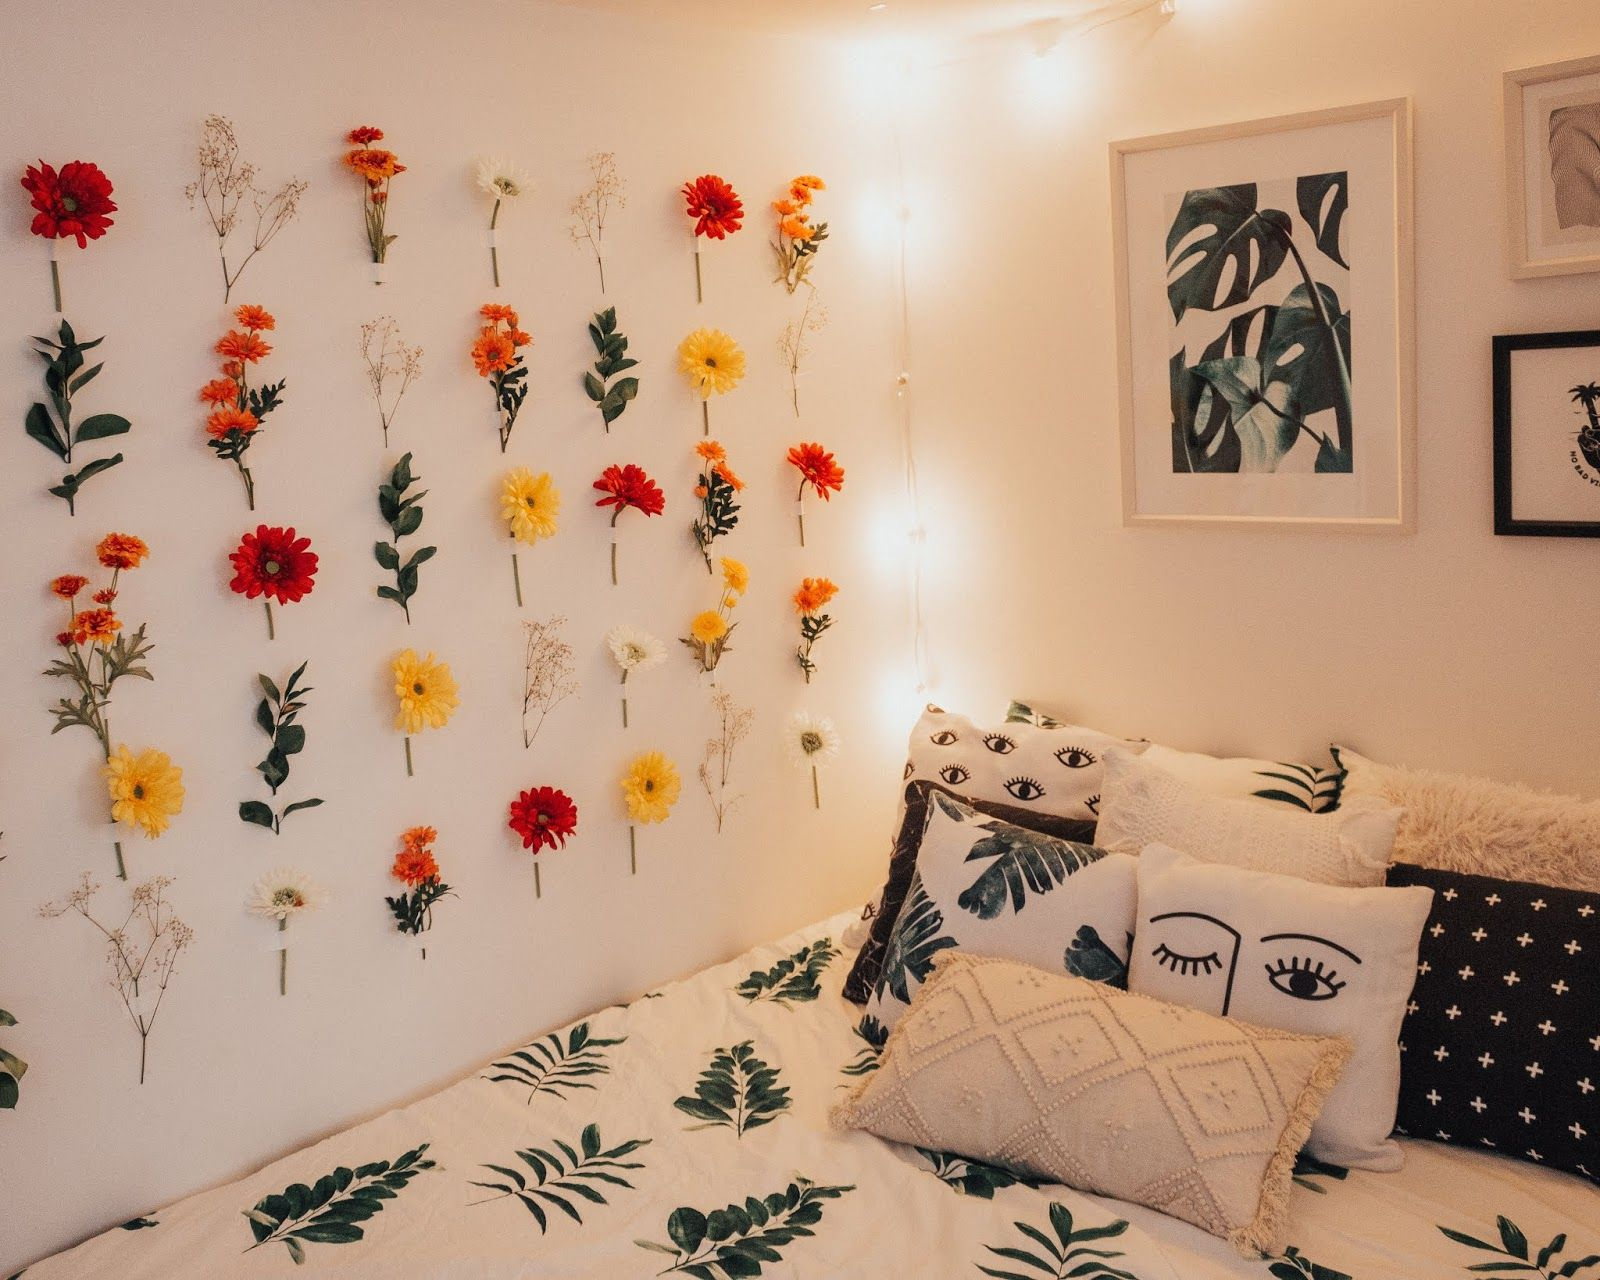 Diy Flower Wall How To Tips Flower Room Decor Diy Flower Wall Flower Wall